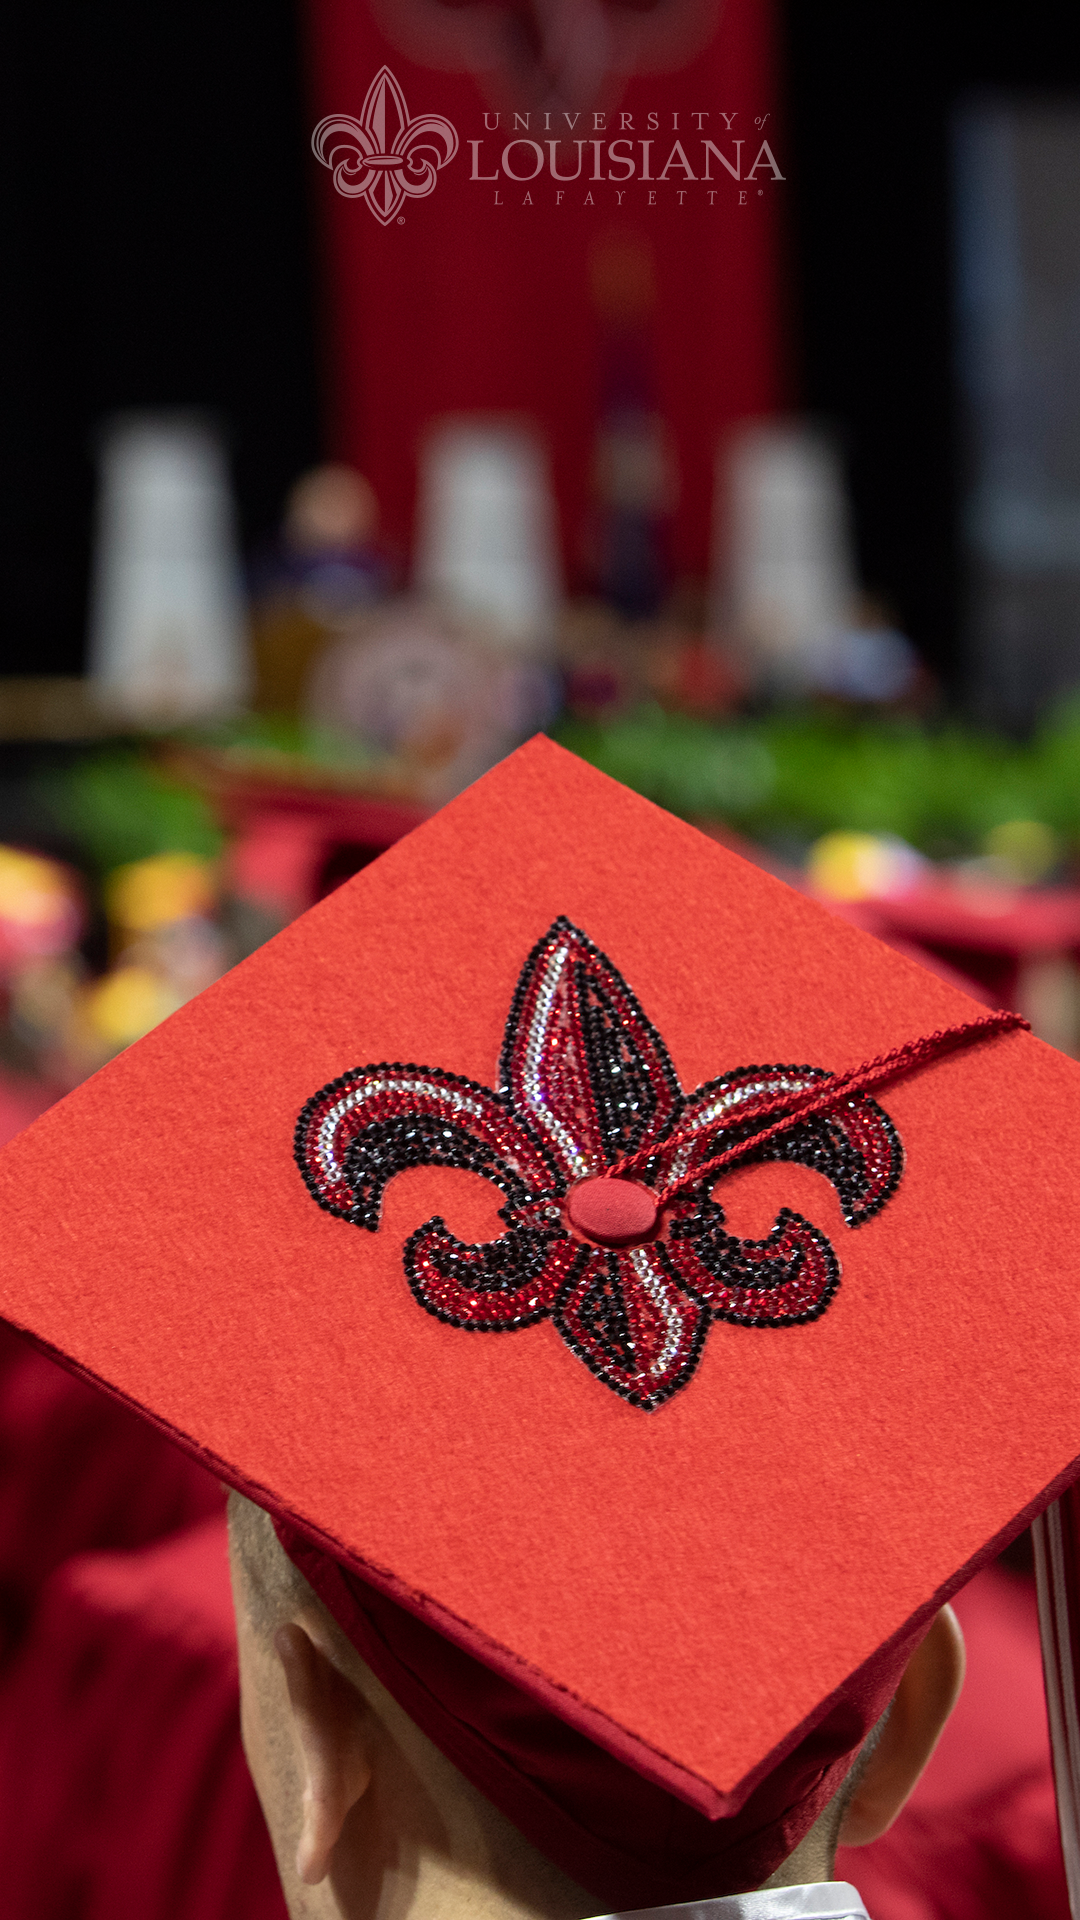 Photo of the back of a graduate's mortarboard with the UL Lafayette fleur-de-lis embellishment on it.